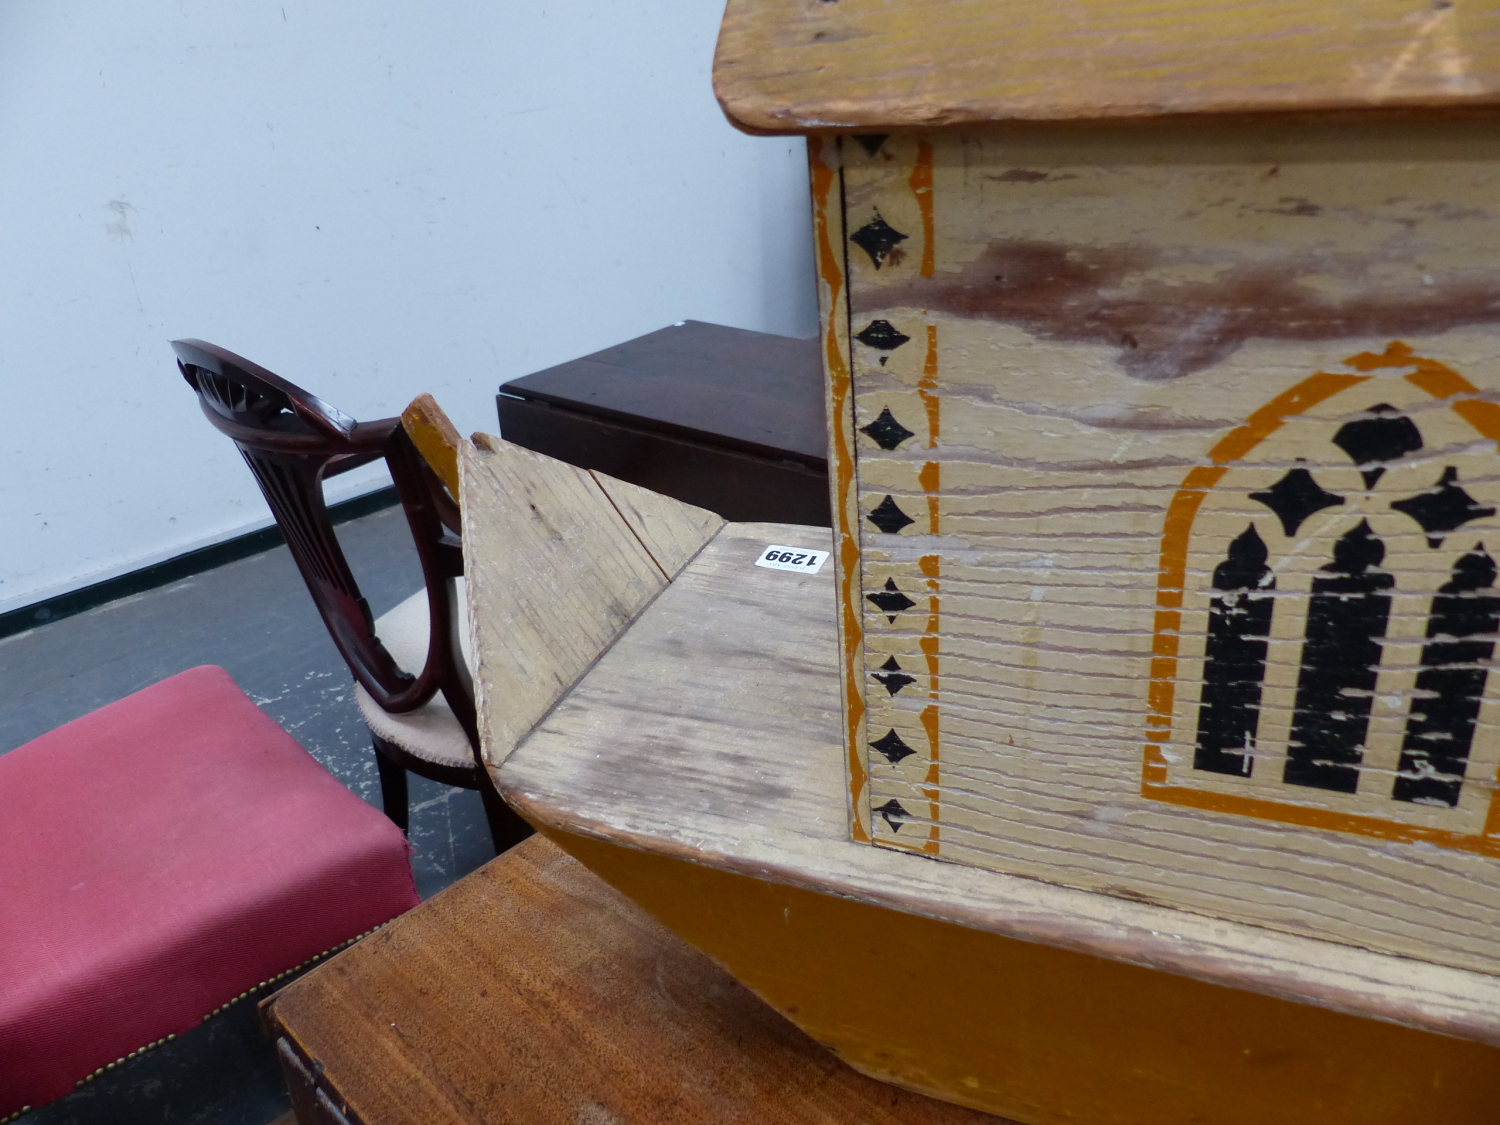 Lot 1299 - A WAR RELIEF TOY WORK NOAH'S ARK, THE YELLOW HOUSE BOAT WITH THREE GOTHIC ARCHED WINDOWS EACH SIDE